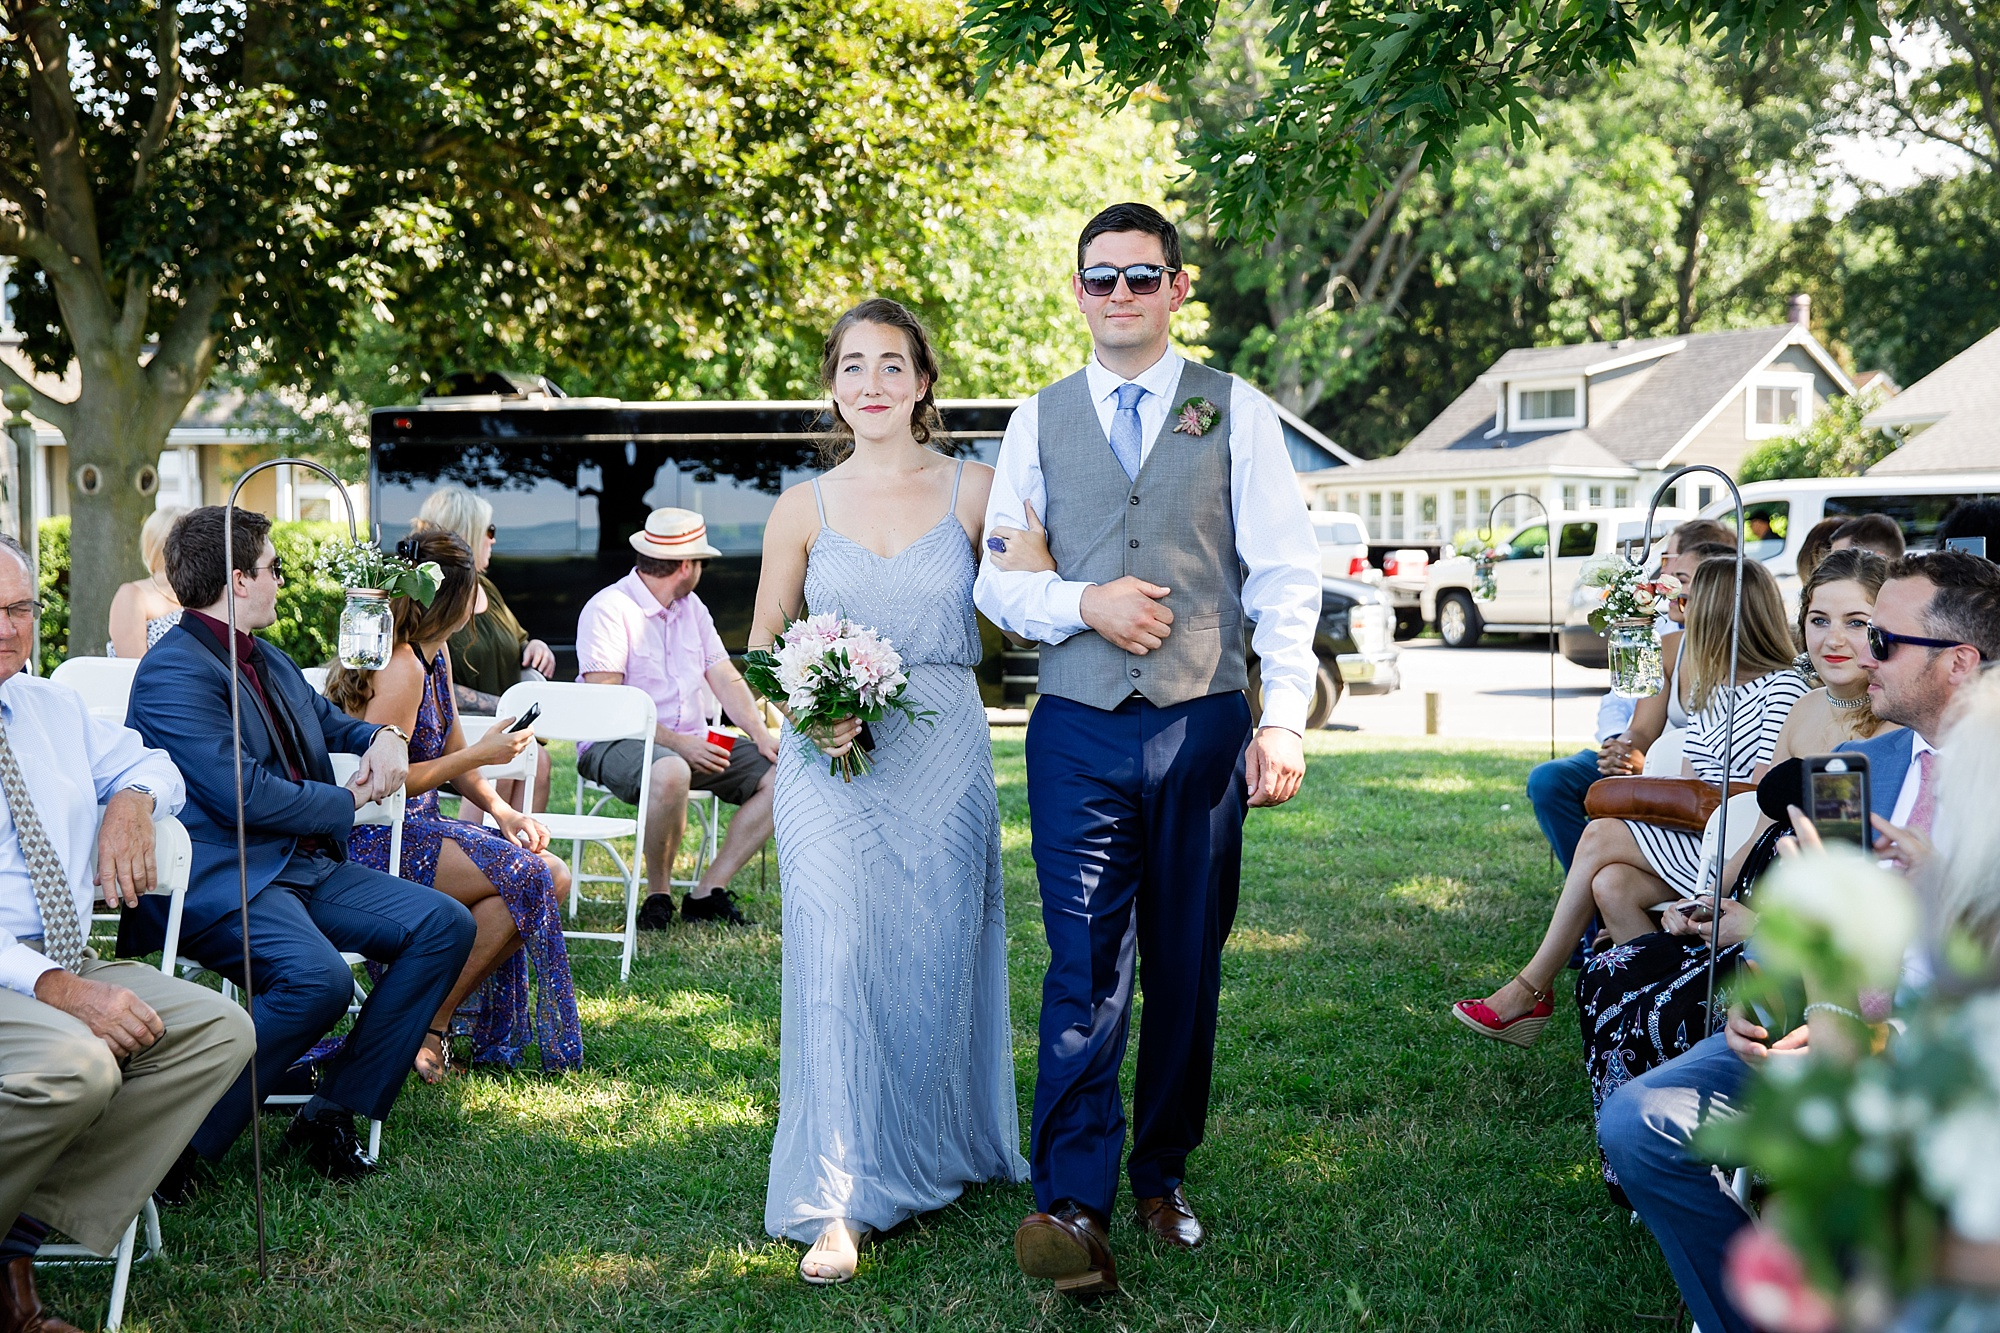 niagaraonthelake-backyardwedding_0044.jpg